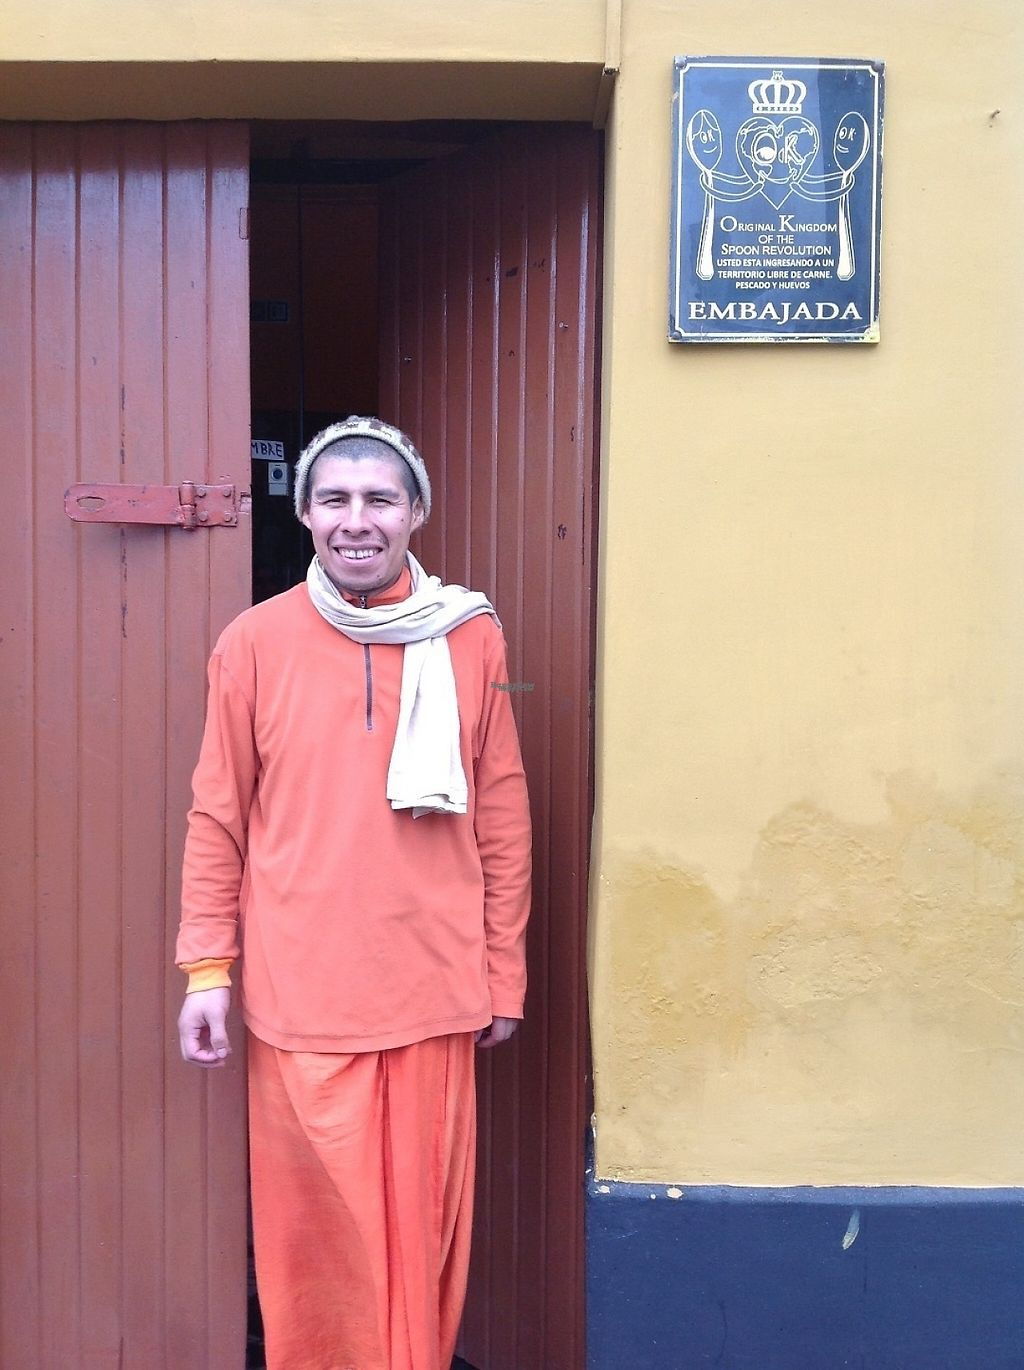 """Photo of Dhamodar  by <a href=""""/members/profile/Arlen"""">Arlen</a> <br/>Hare Krishna Devotee <br/> January 26, 2017  - <a href='/contact/abuse/image/85934/216902'>Report</a>"""